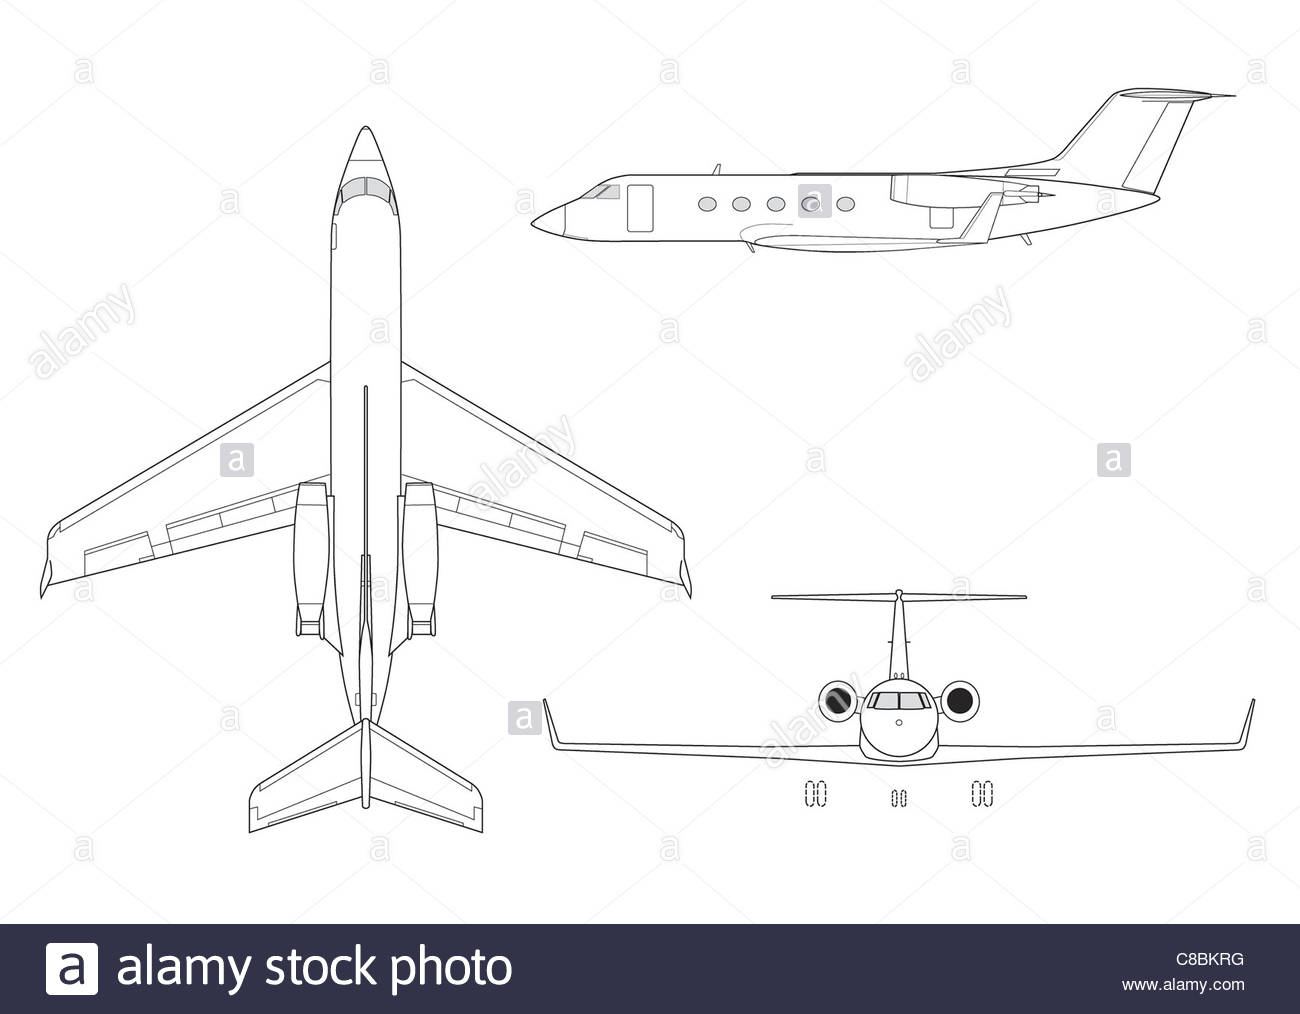 1300x1014 3 View Aircraft Line Art Drawing Gulfstream Iii Stock Photo